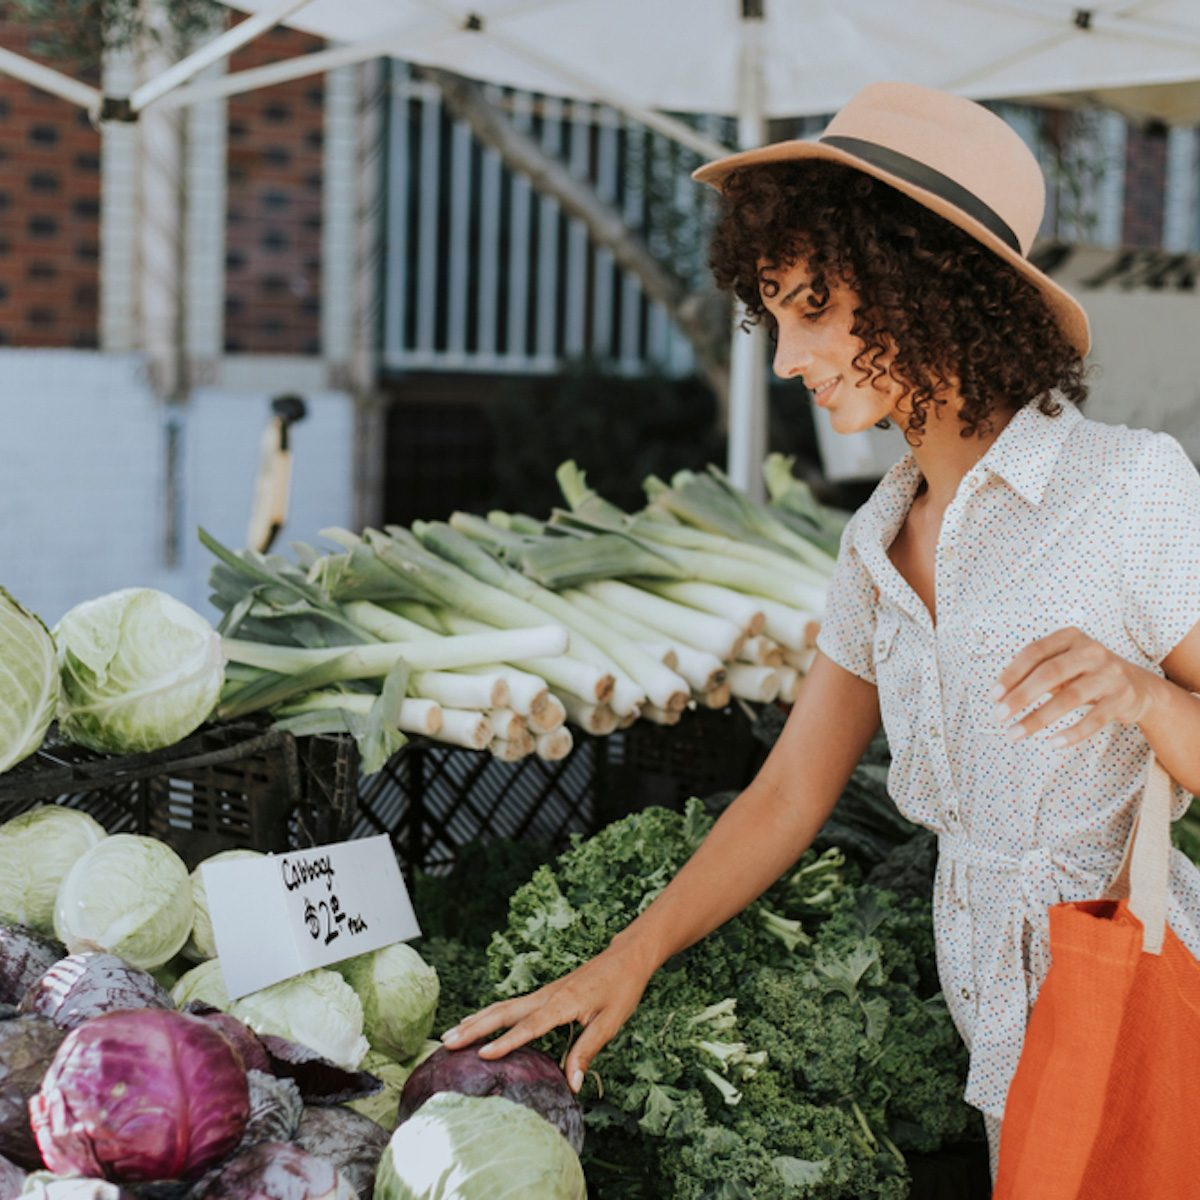 Beautiful woman buying vegetables at a farmers market